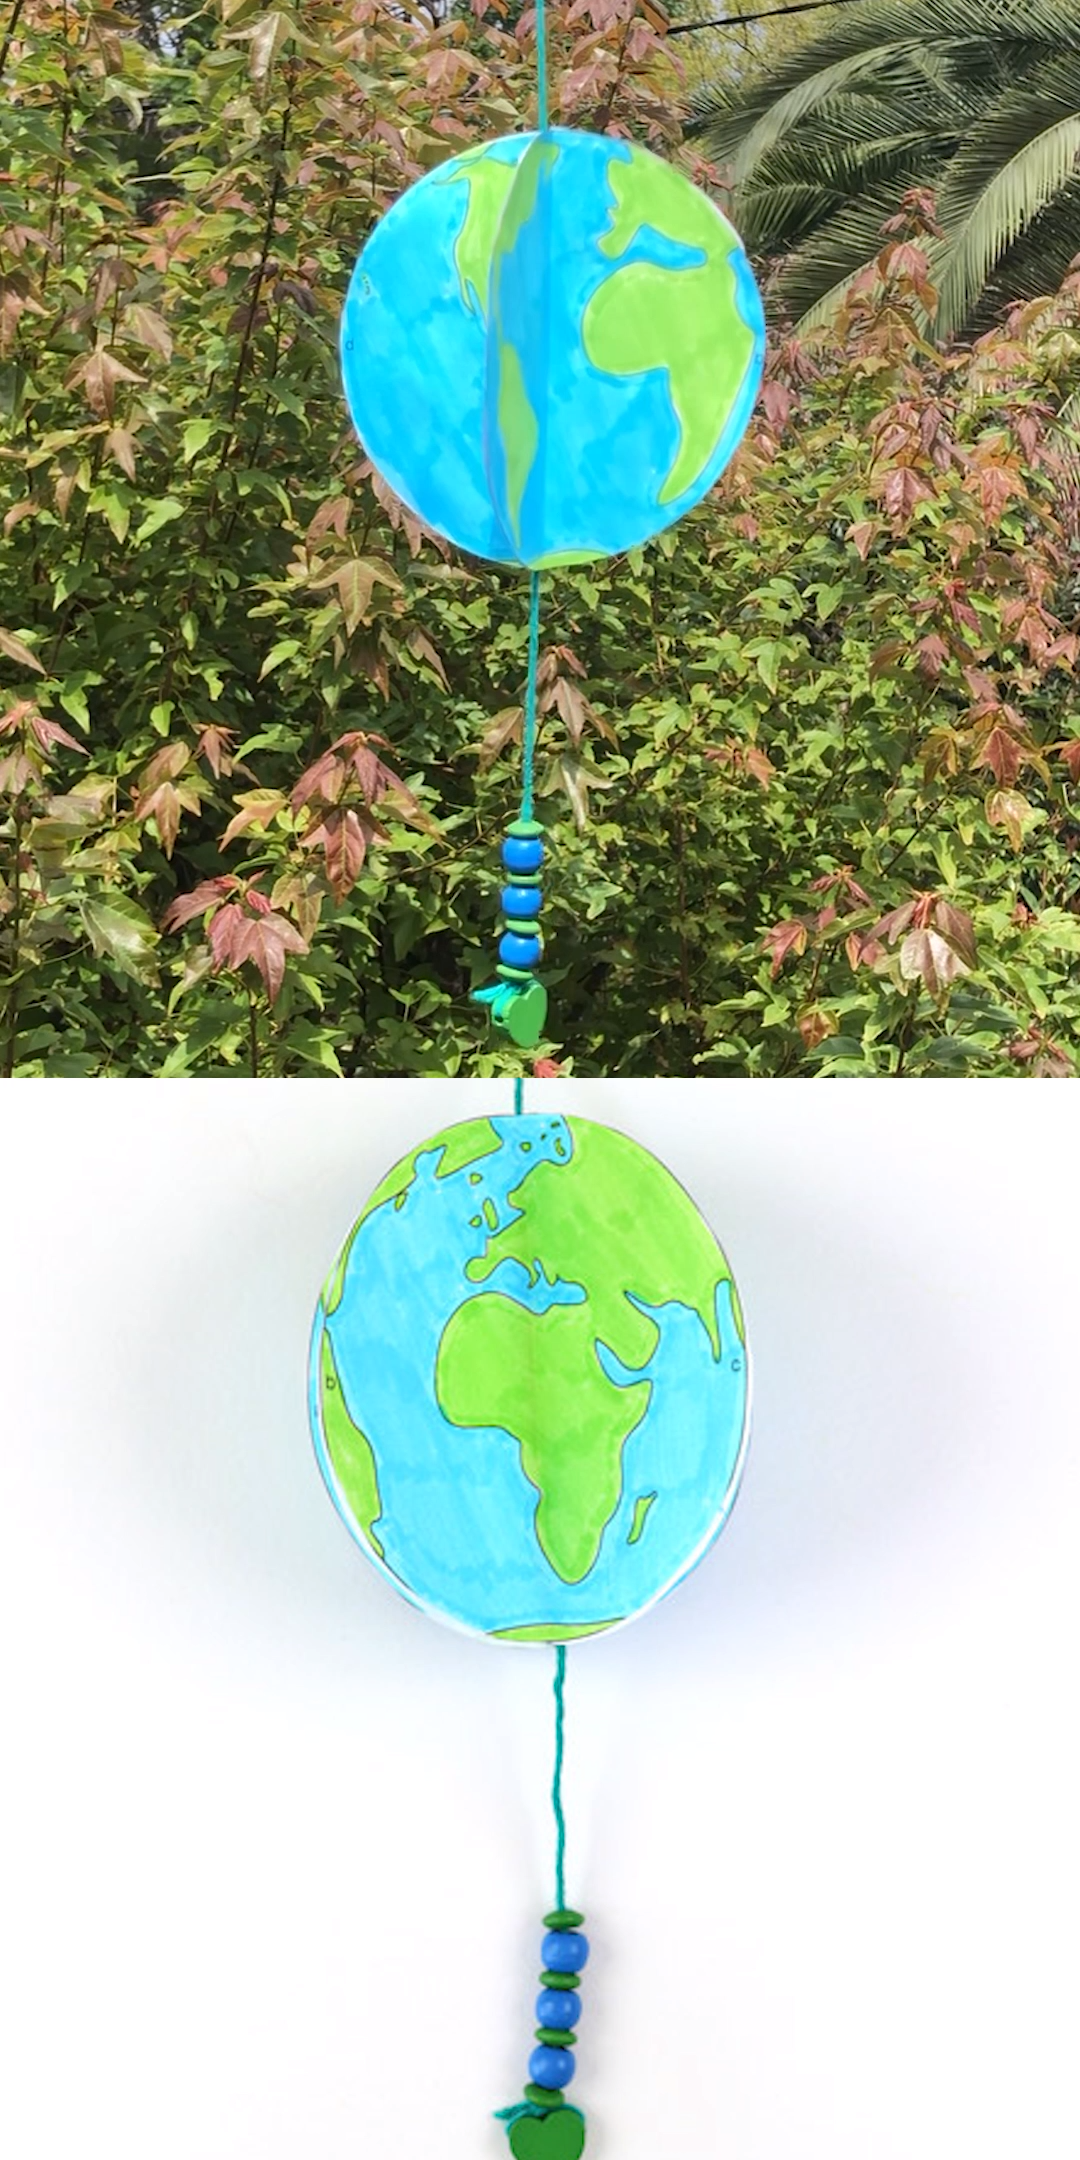 spinning paper earth craft for kids with free printable template. This 3D paper earth spins in the wind just like our real planet does! A fun and easy craft idea for earth day and a great STEM project for kids. #earthday #stemcraft #kidscrafts #kidsactivities #creativefun #thecrafttrain ##earthdaycrafts #papercrafts #spinner #3Dcrafts